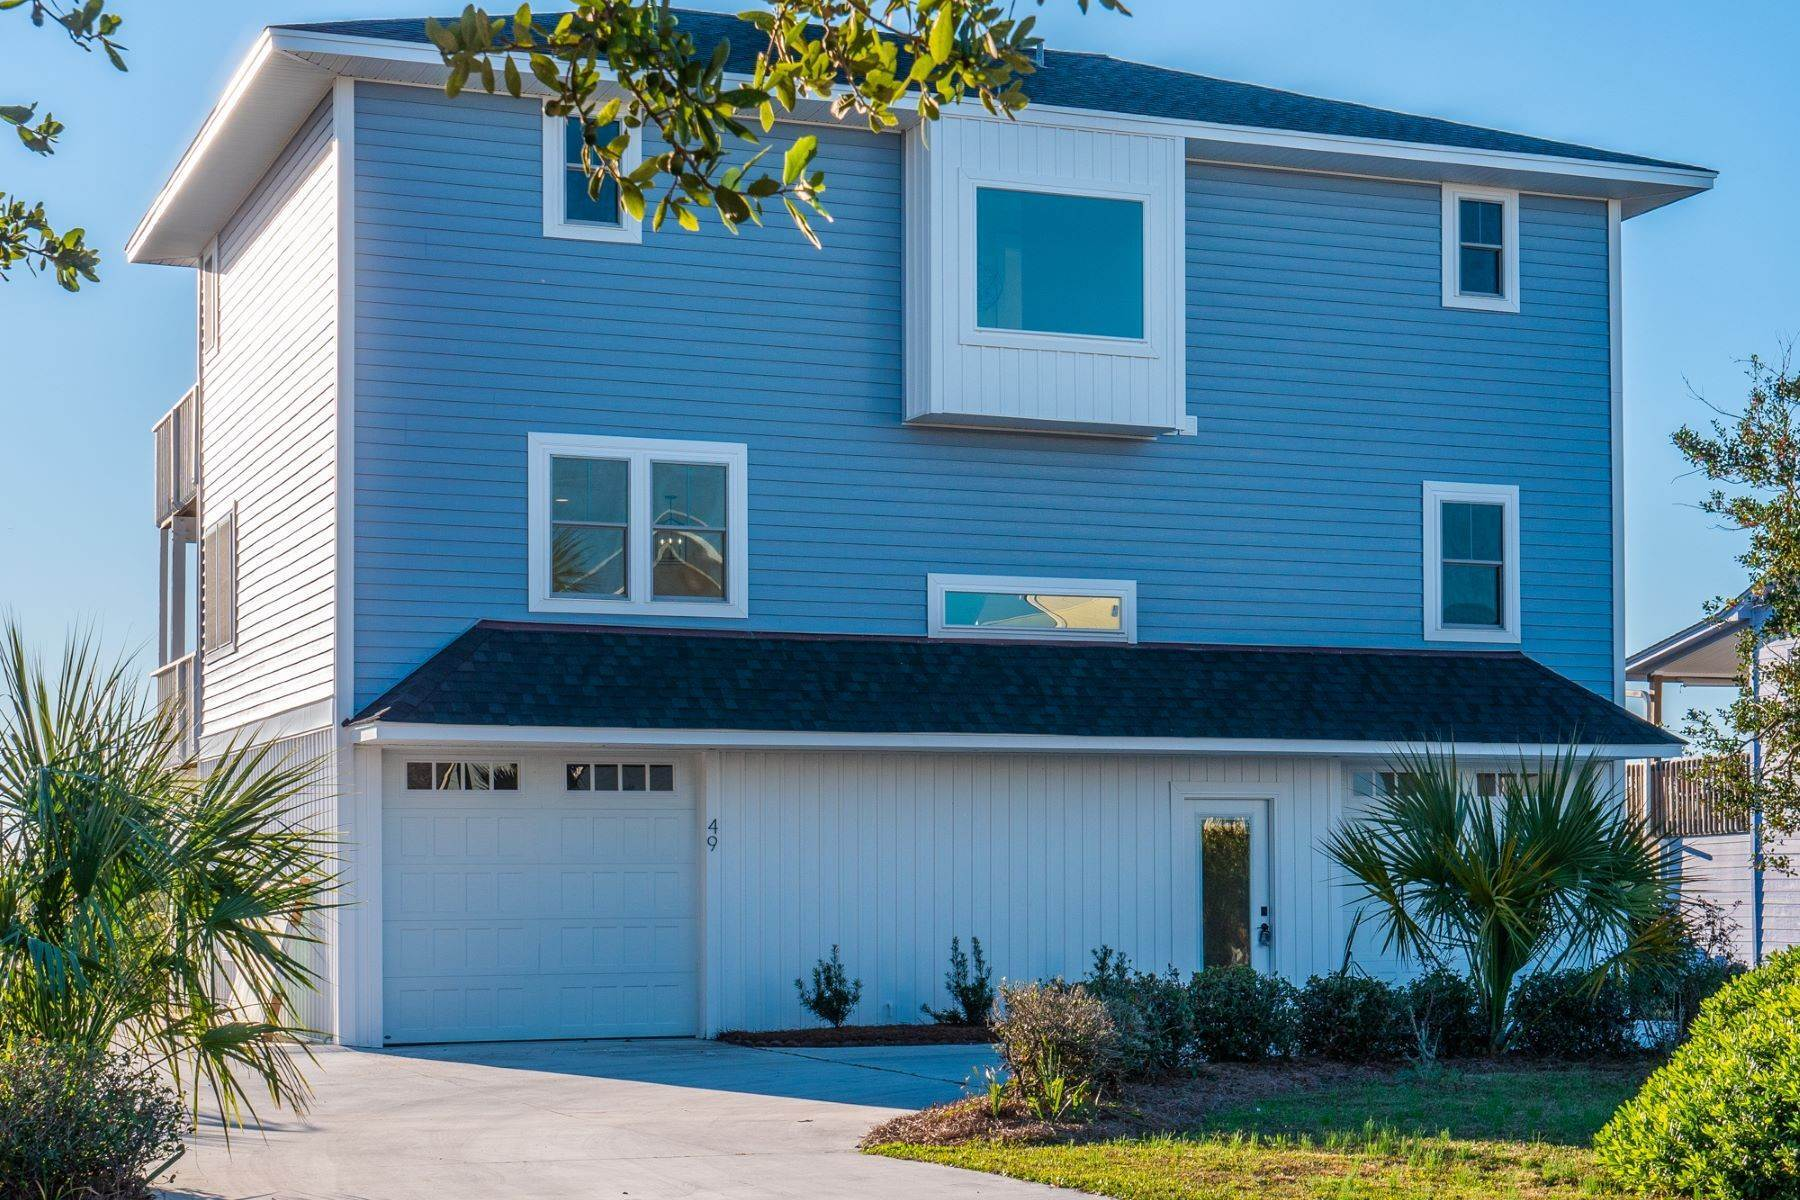 Single Family Homes for Sale at Beach Perfection From Every View 49 N Ridge Surf City, North Carolina 28445 United States